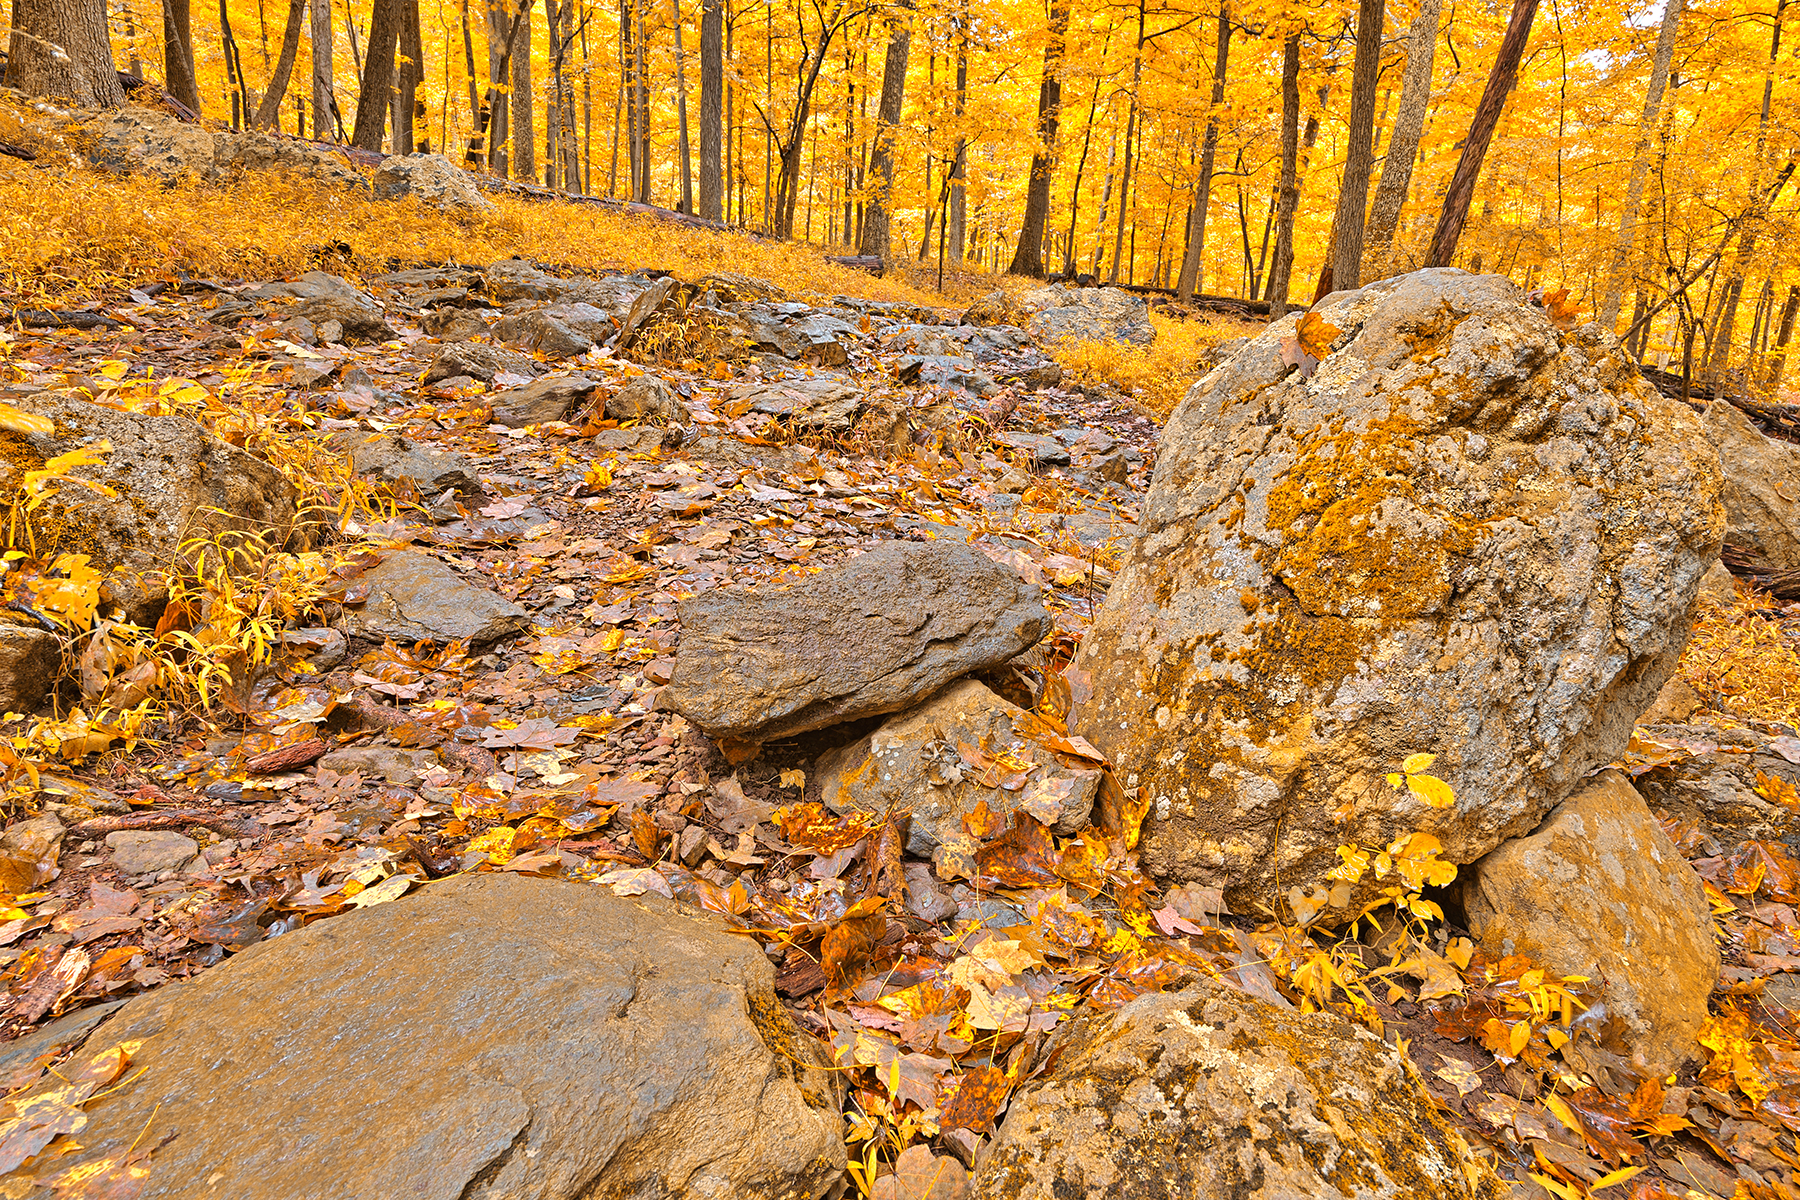 Catoctin Mountain Trail - Gold Fantasy HDR, America, Pathway, Seasonal, Season, HQ Photo